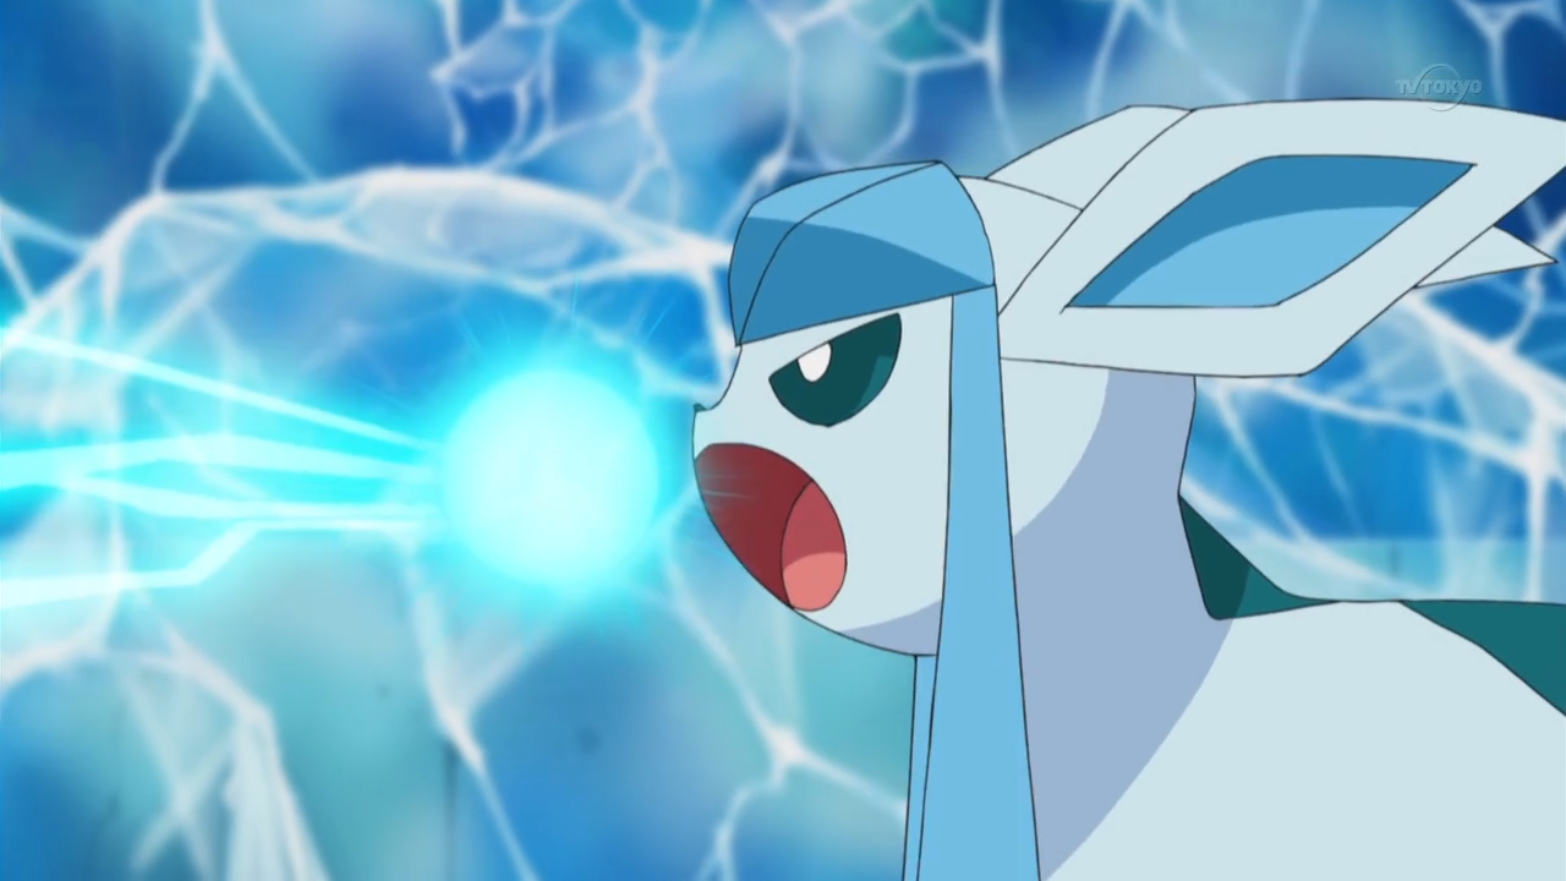 http://vignette1.wikia.nocookie.net/pokemon/images/2/23/Virgil_Glaceon_Ice_Beam.png/revision/latest?cb=20151001053838